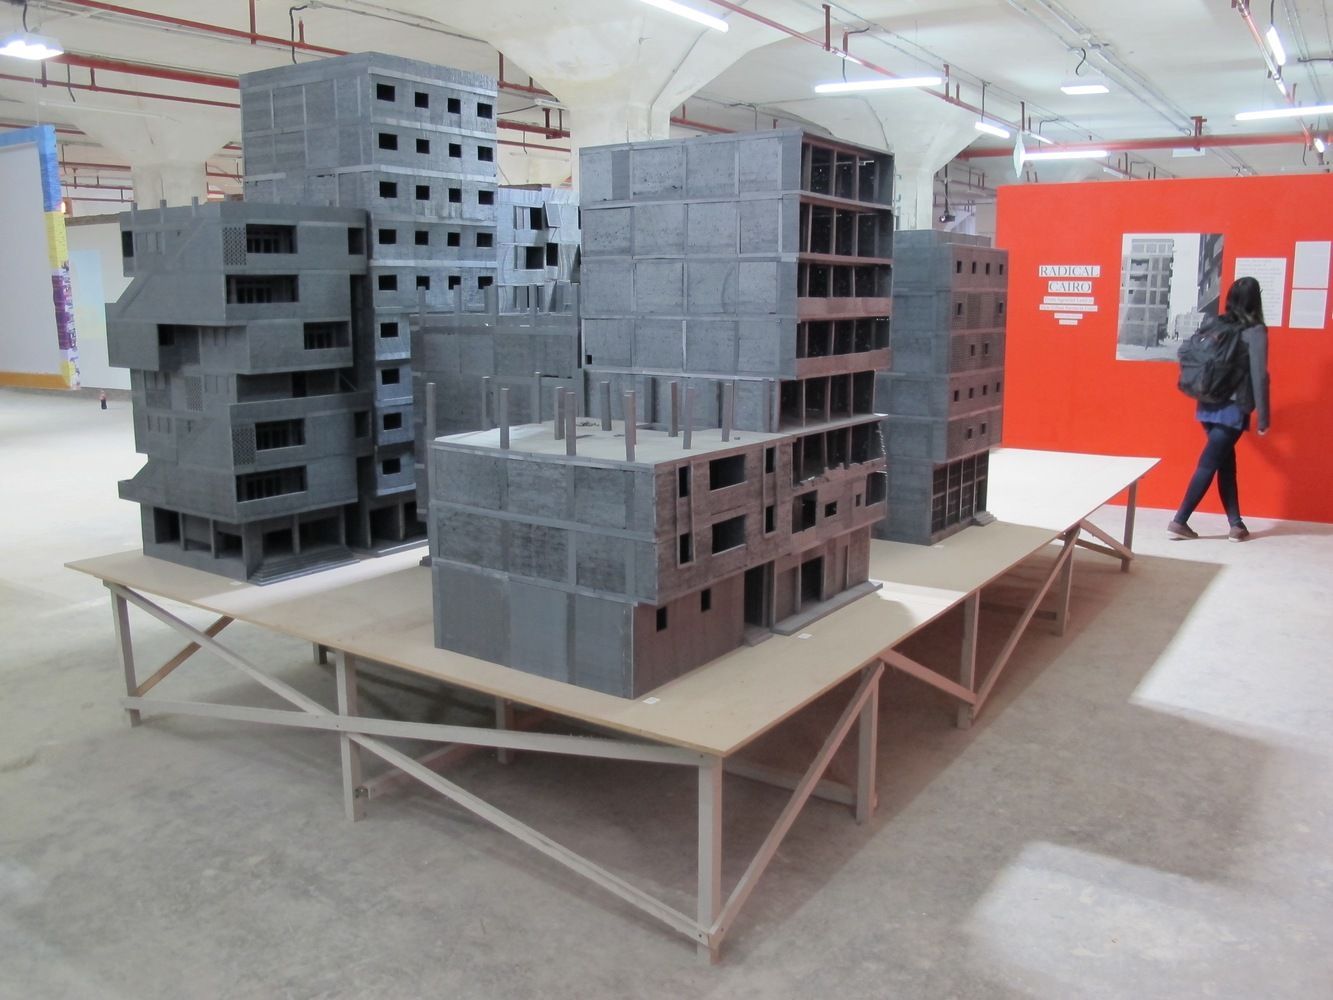 Gallery of Exhibition: Radical Cairo at the Shenzhen Bi-City Biennale of Architecture - 1